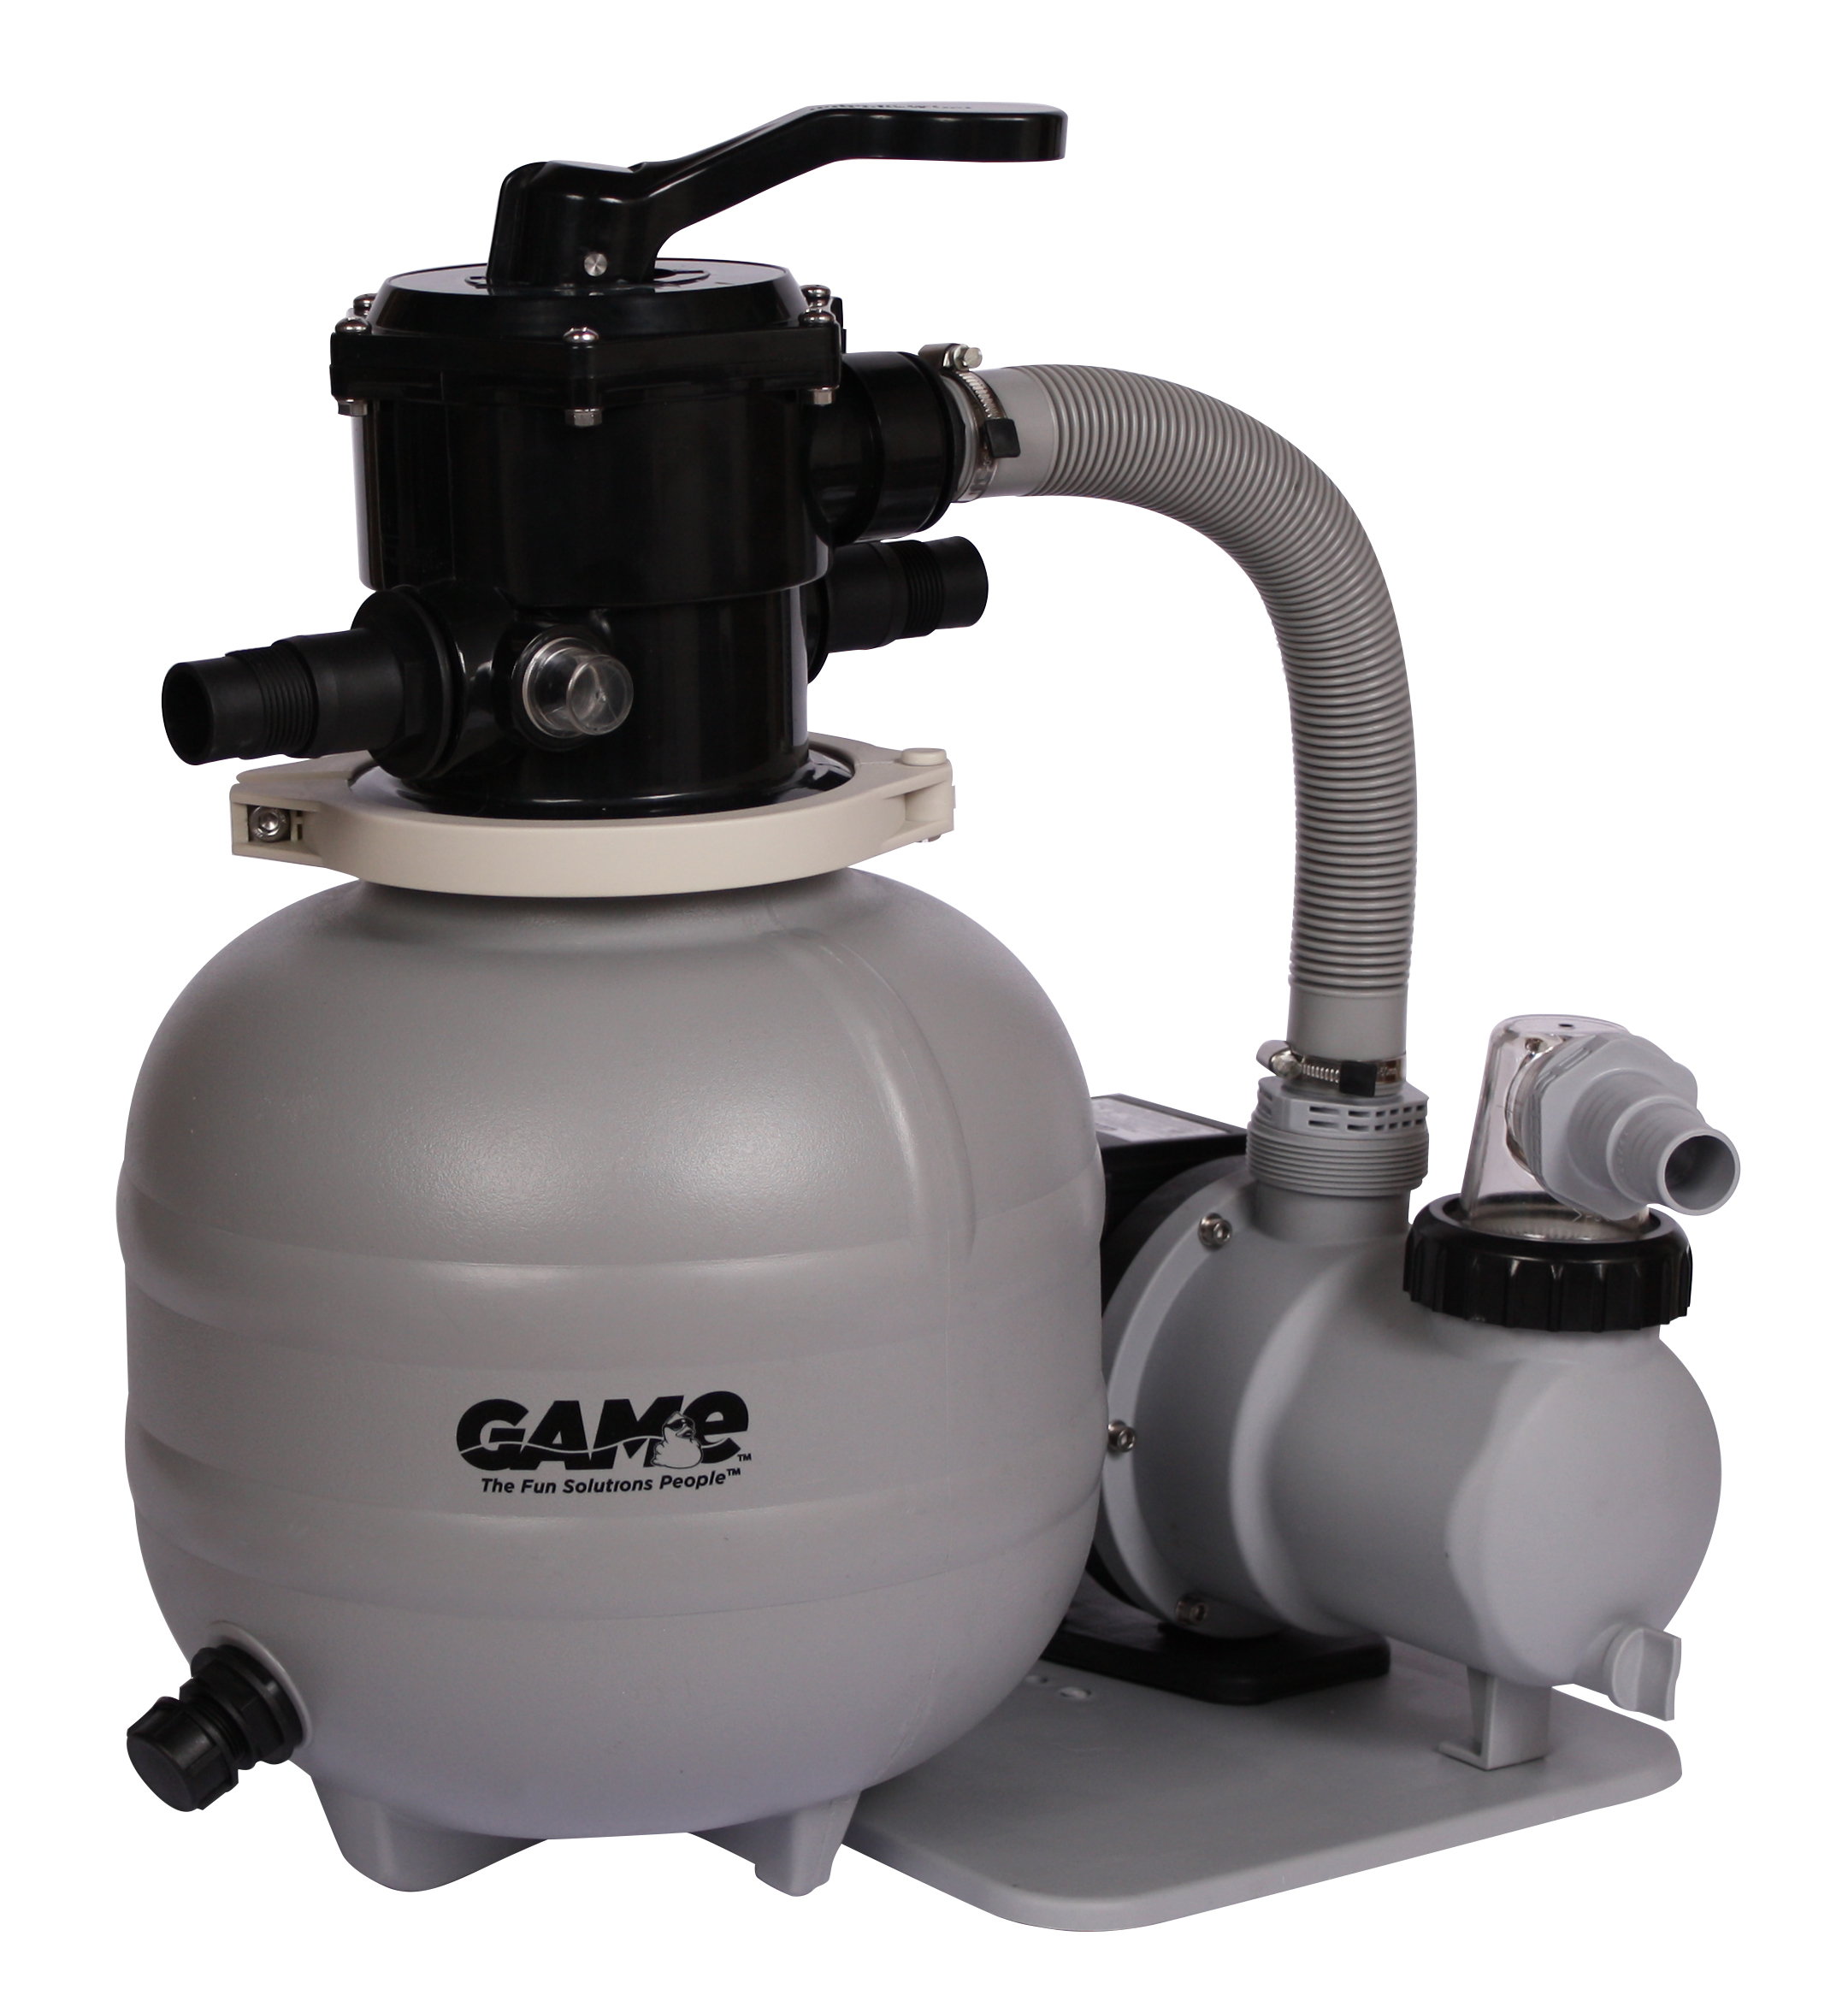 Sandpro 25 High Flow Pool Pump And Filter System For Above Ground Pools